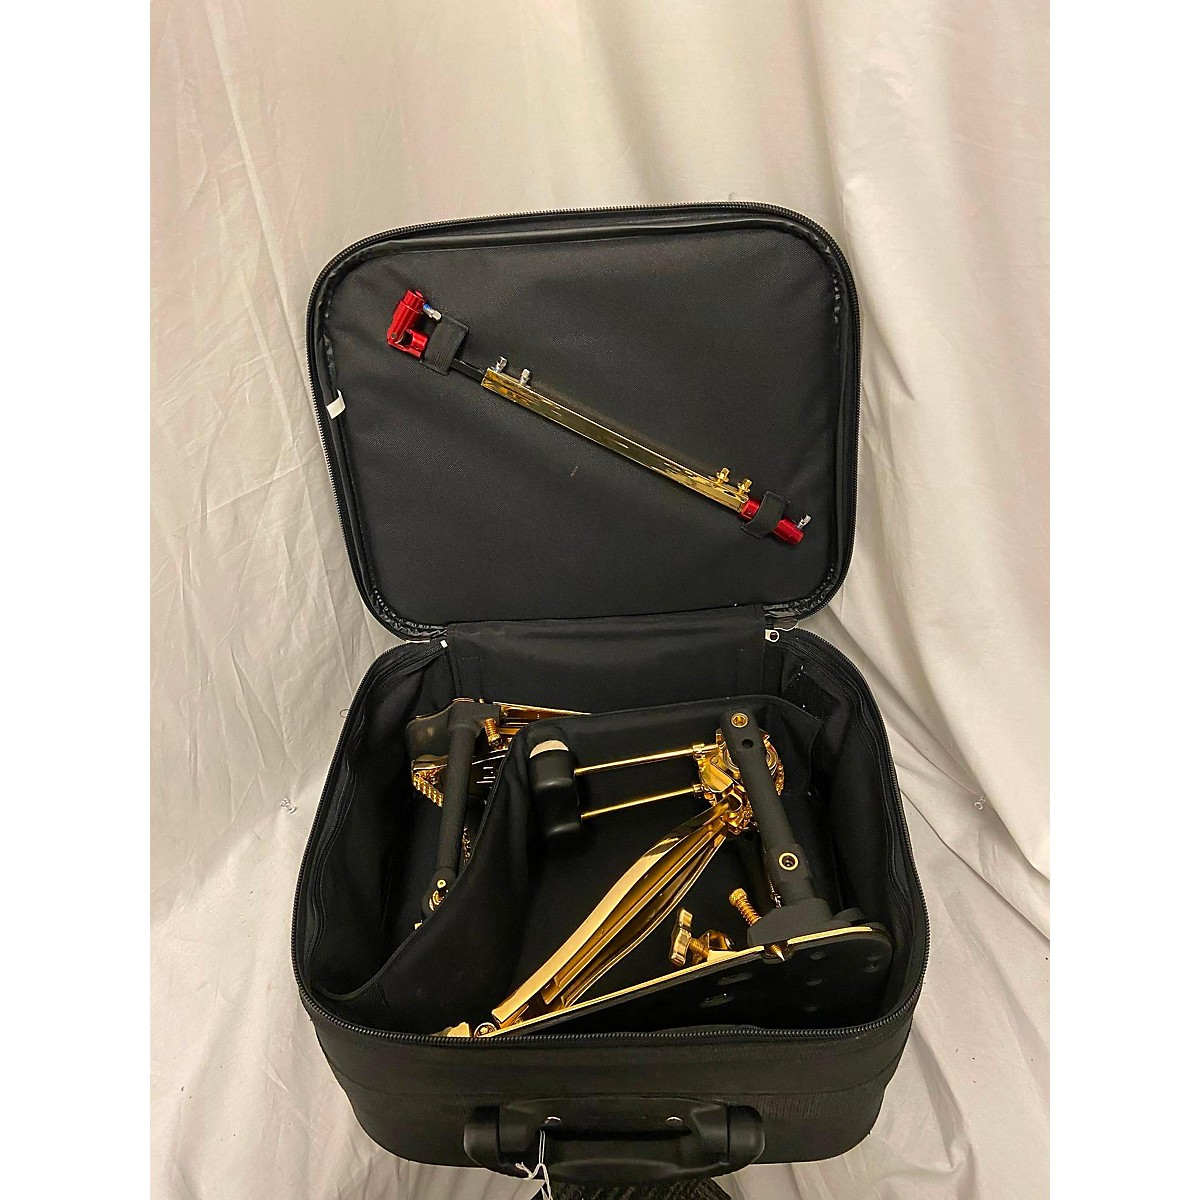 DW 9002 Series Double Gold Plated Double Bass Drum Pedal